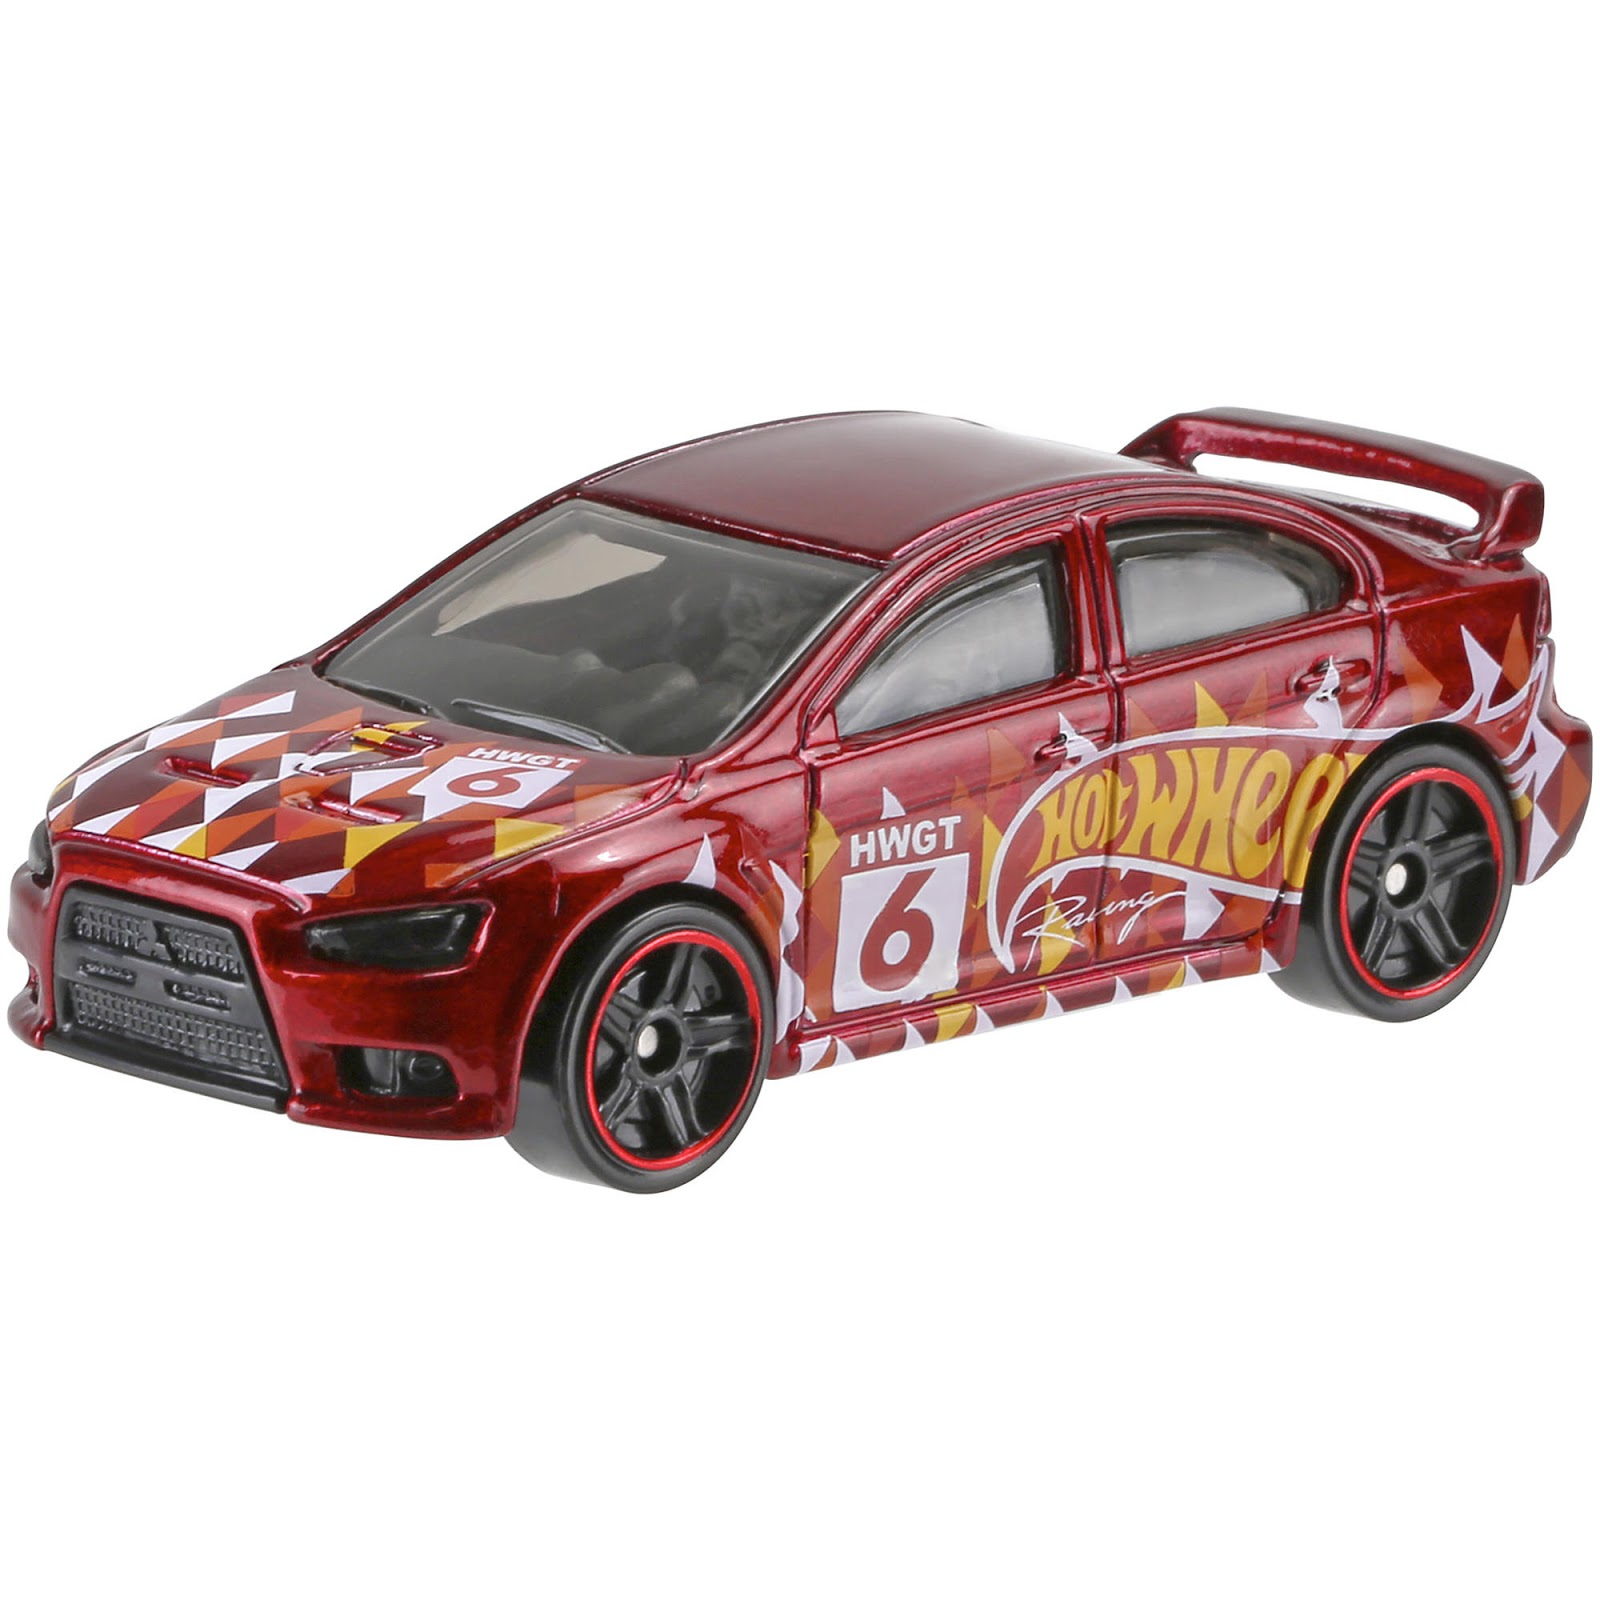 November 12th Hot Wheels Kmart Collectors Cases Are Available Now At Kmart Com Lamleygroup